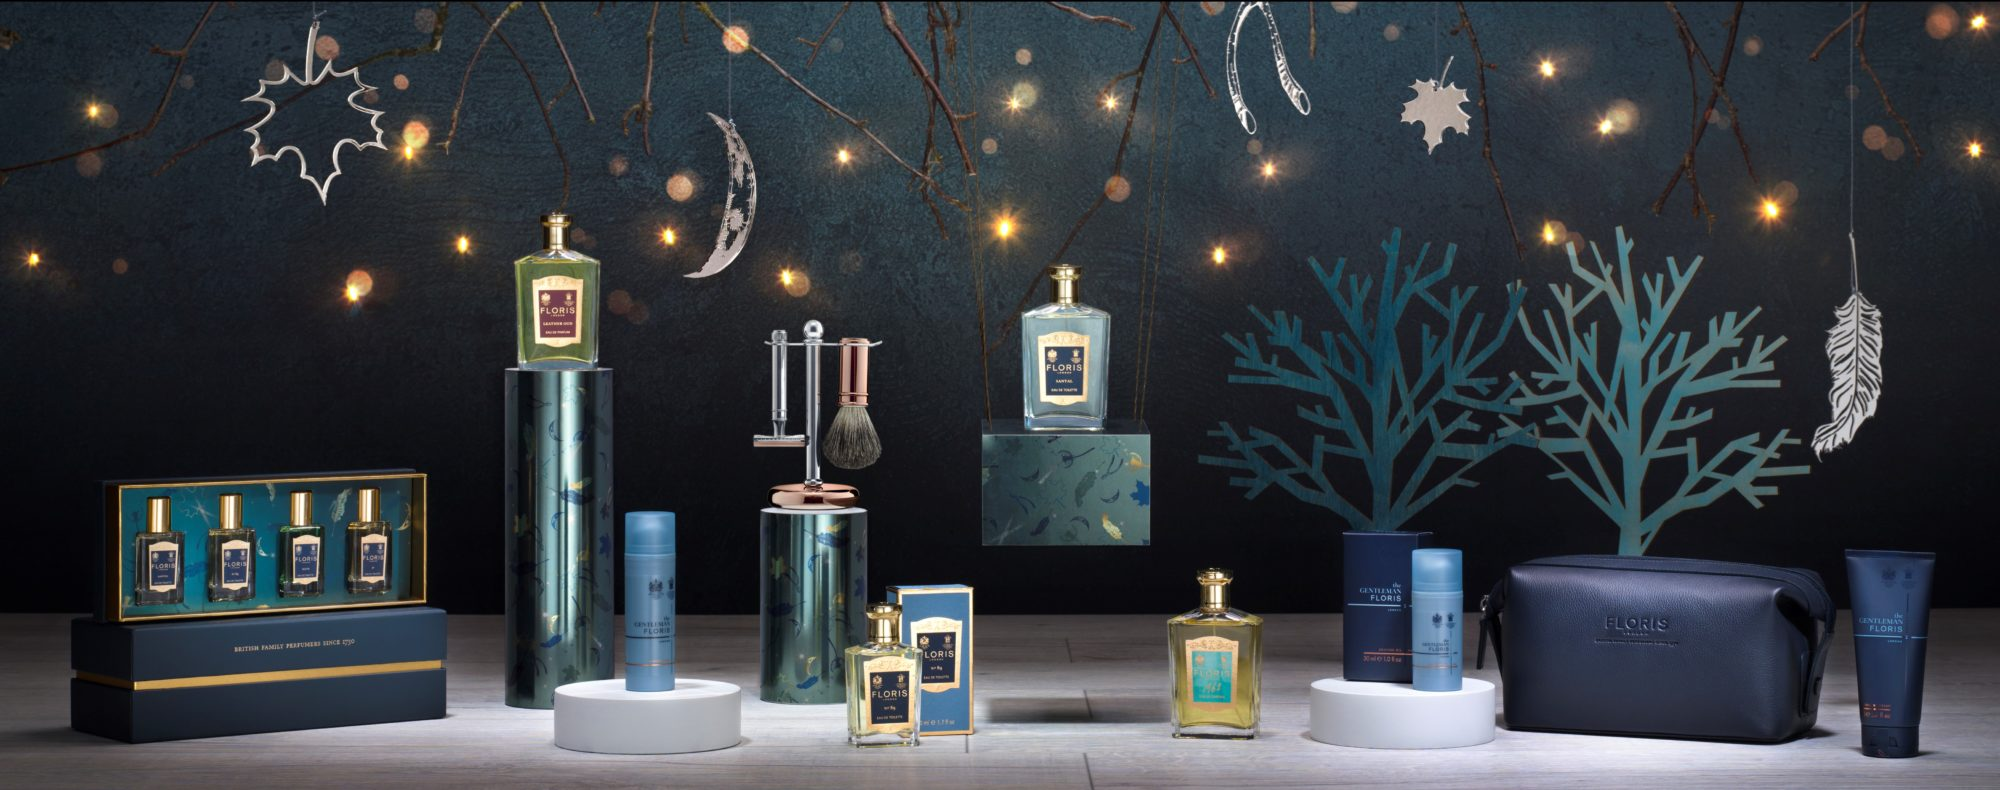 Floris Christmas at Frontlinestyle